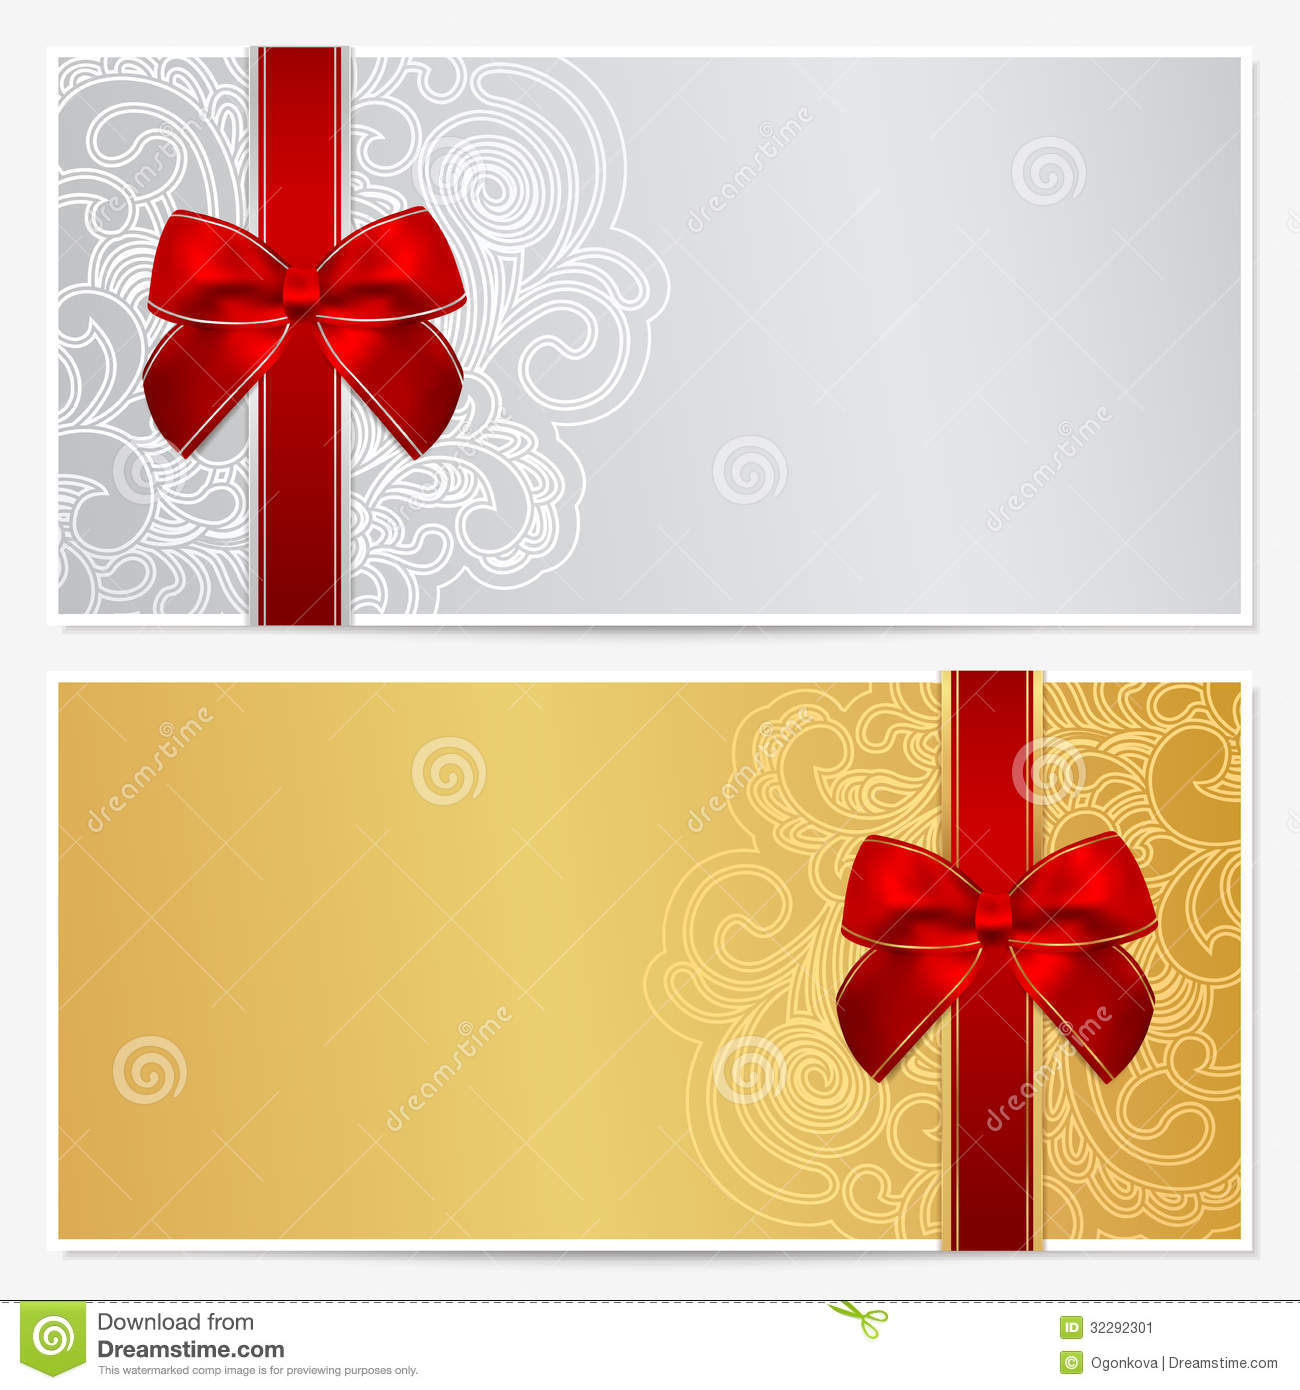 Gift certificate voucher coupon template stock vector gift certificate voucher coupon template yelopaper